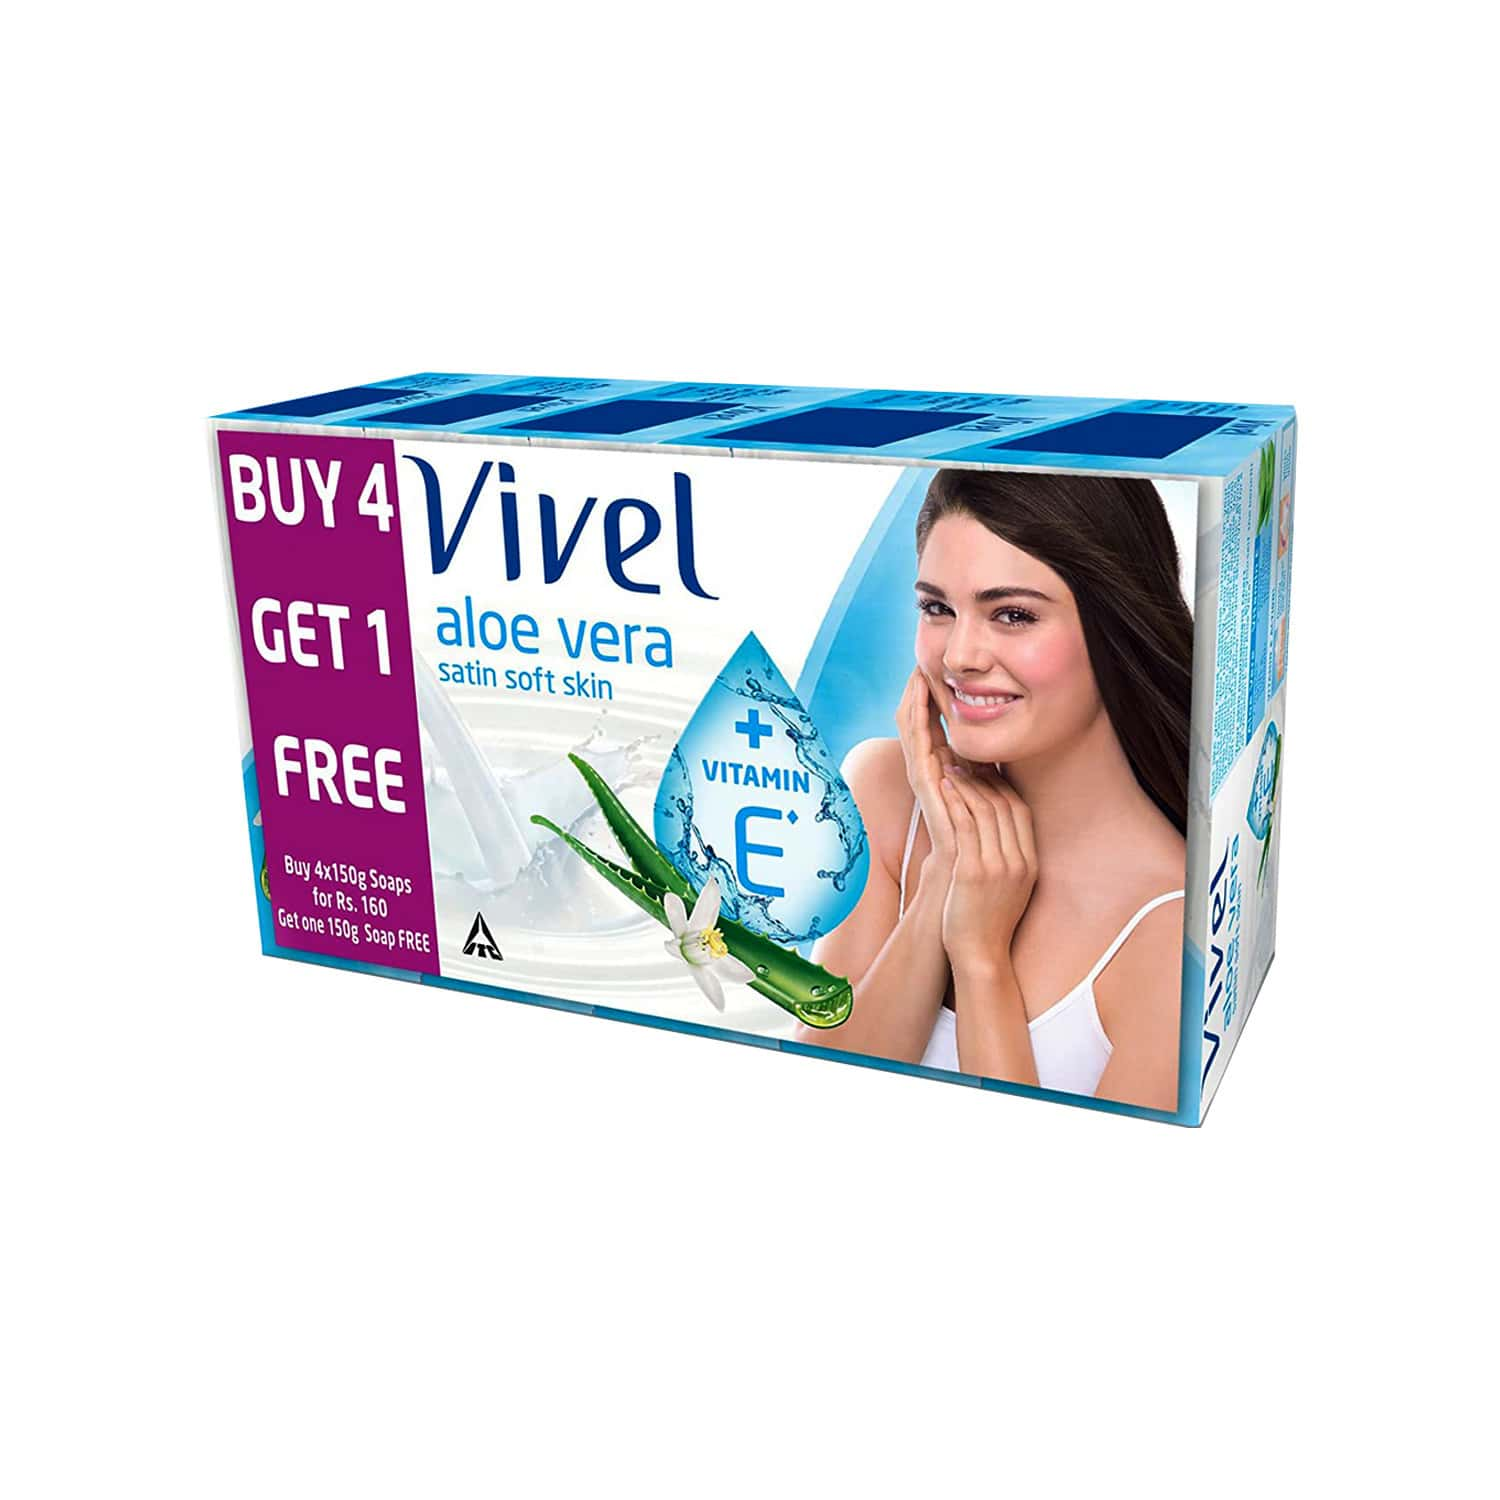 Vivel Aloe Vera Soap  Wrap Of 600 G (pack Of 4x150g)